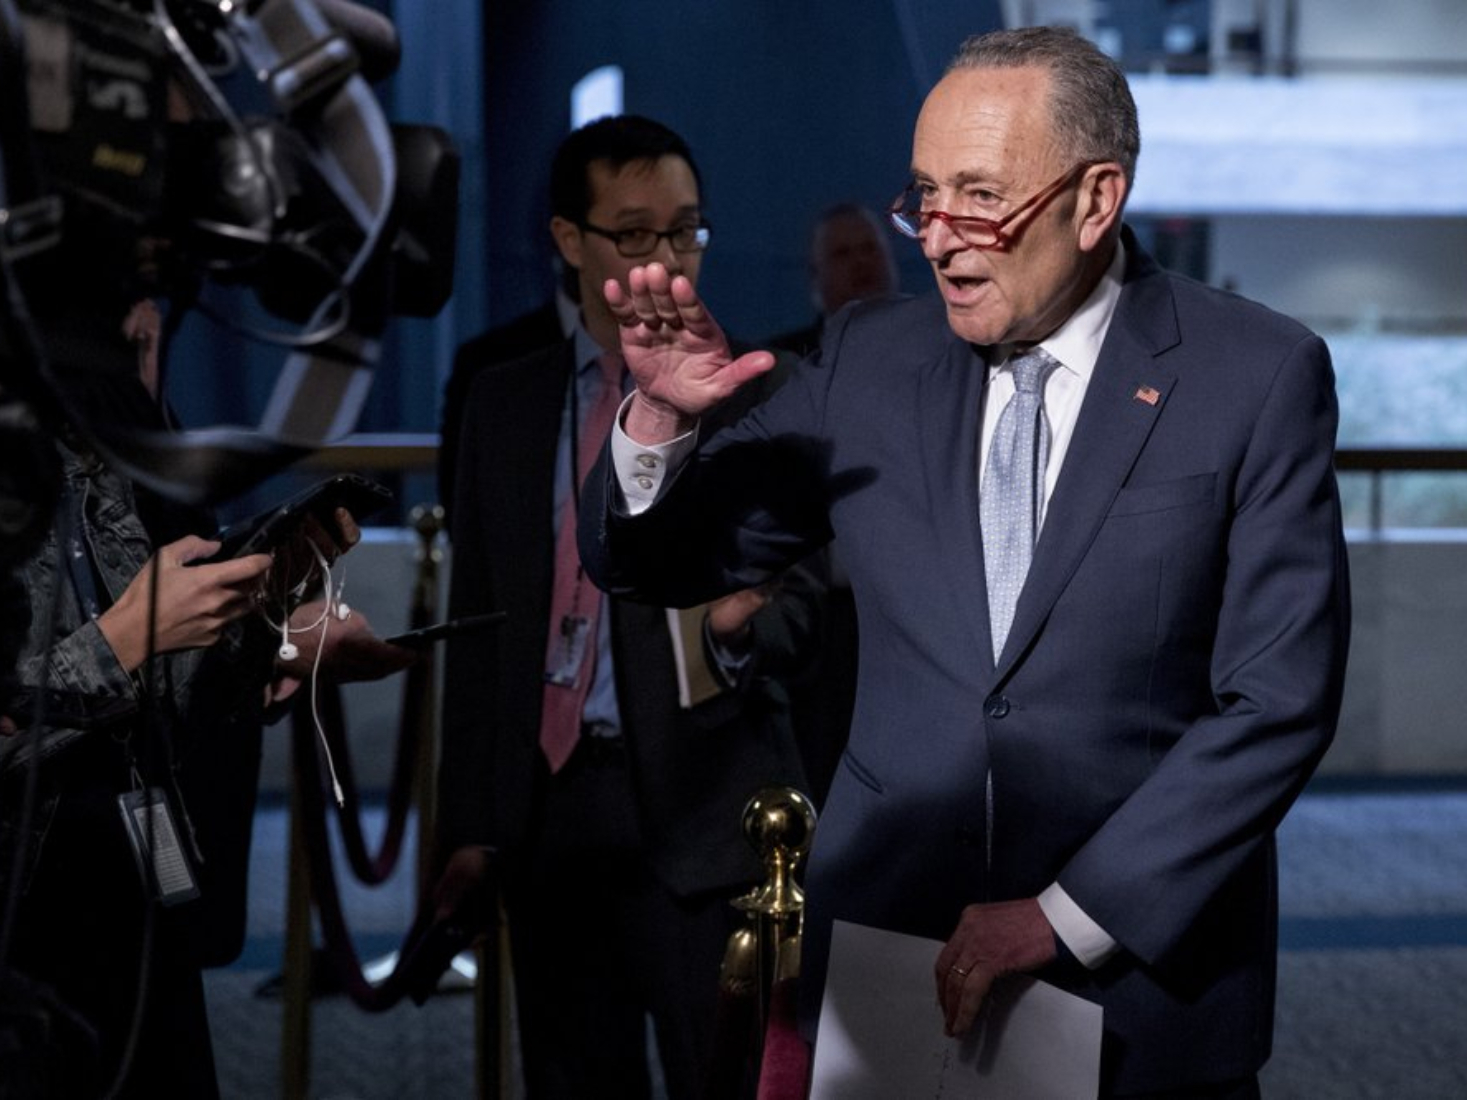 Democrat says new deal reached on US small businesses funding